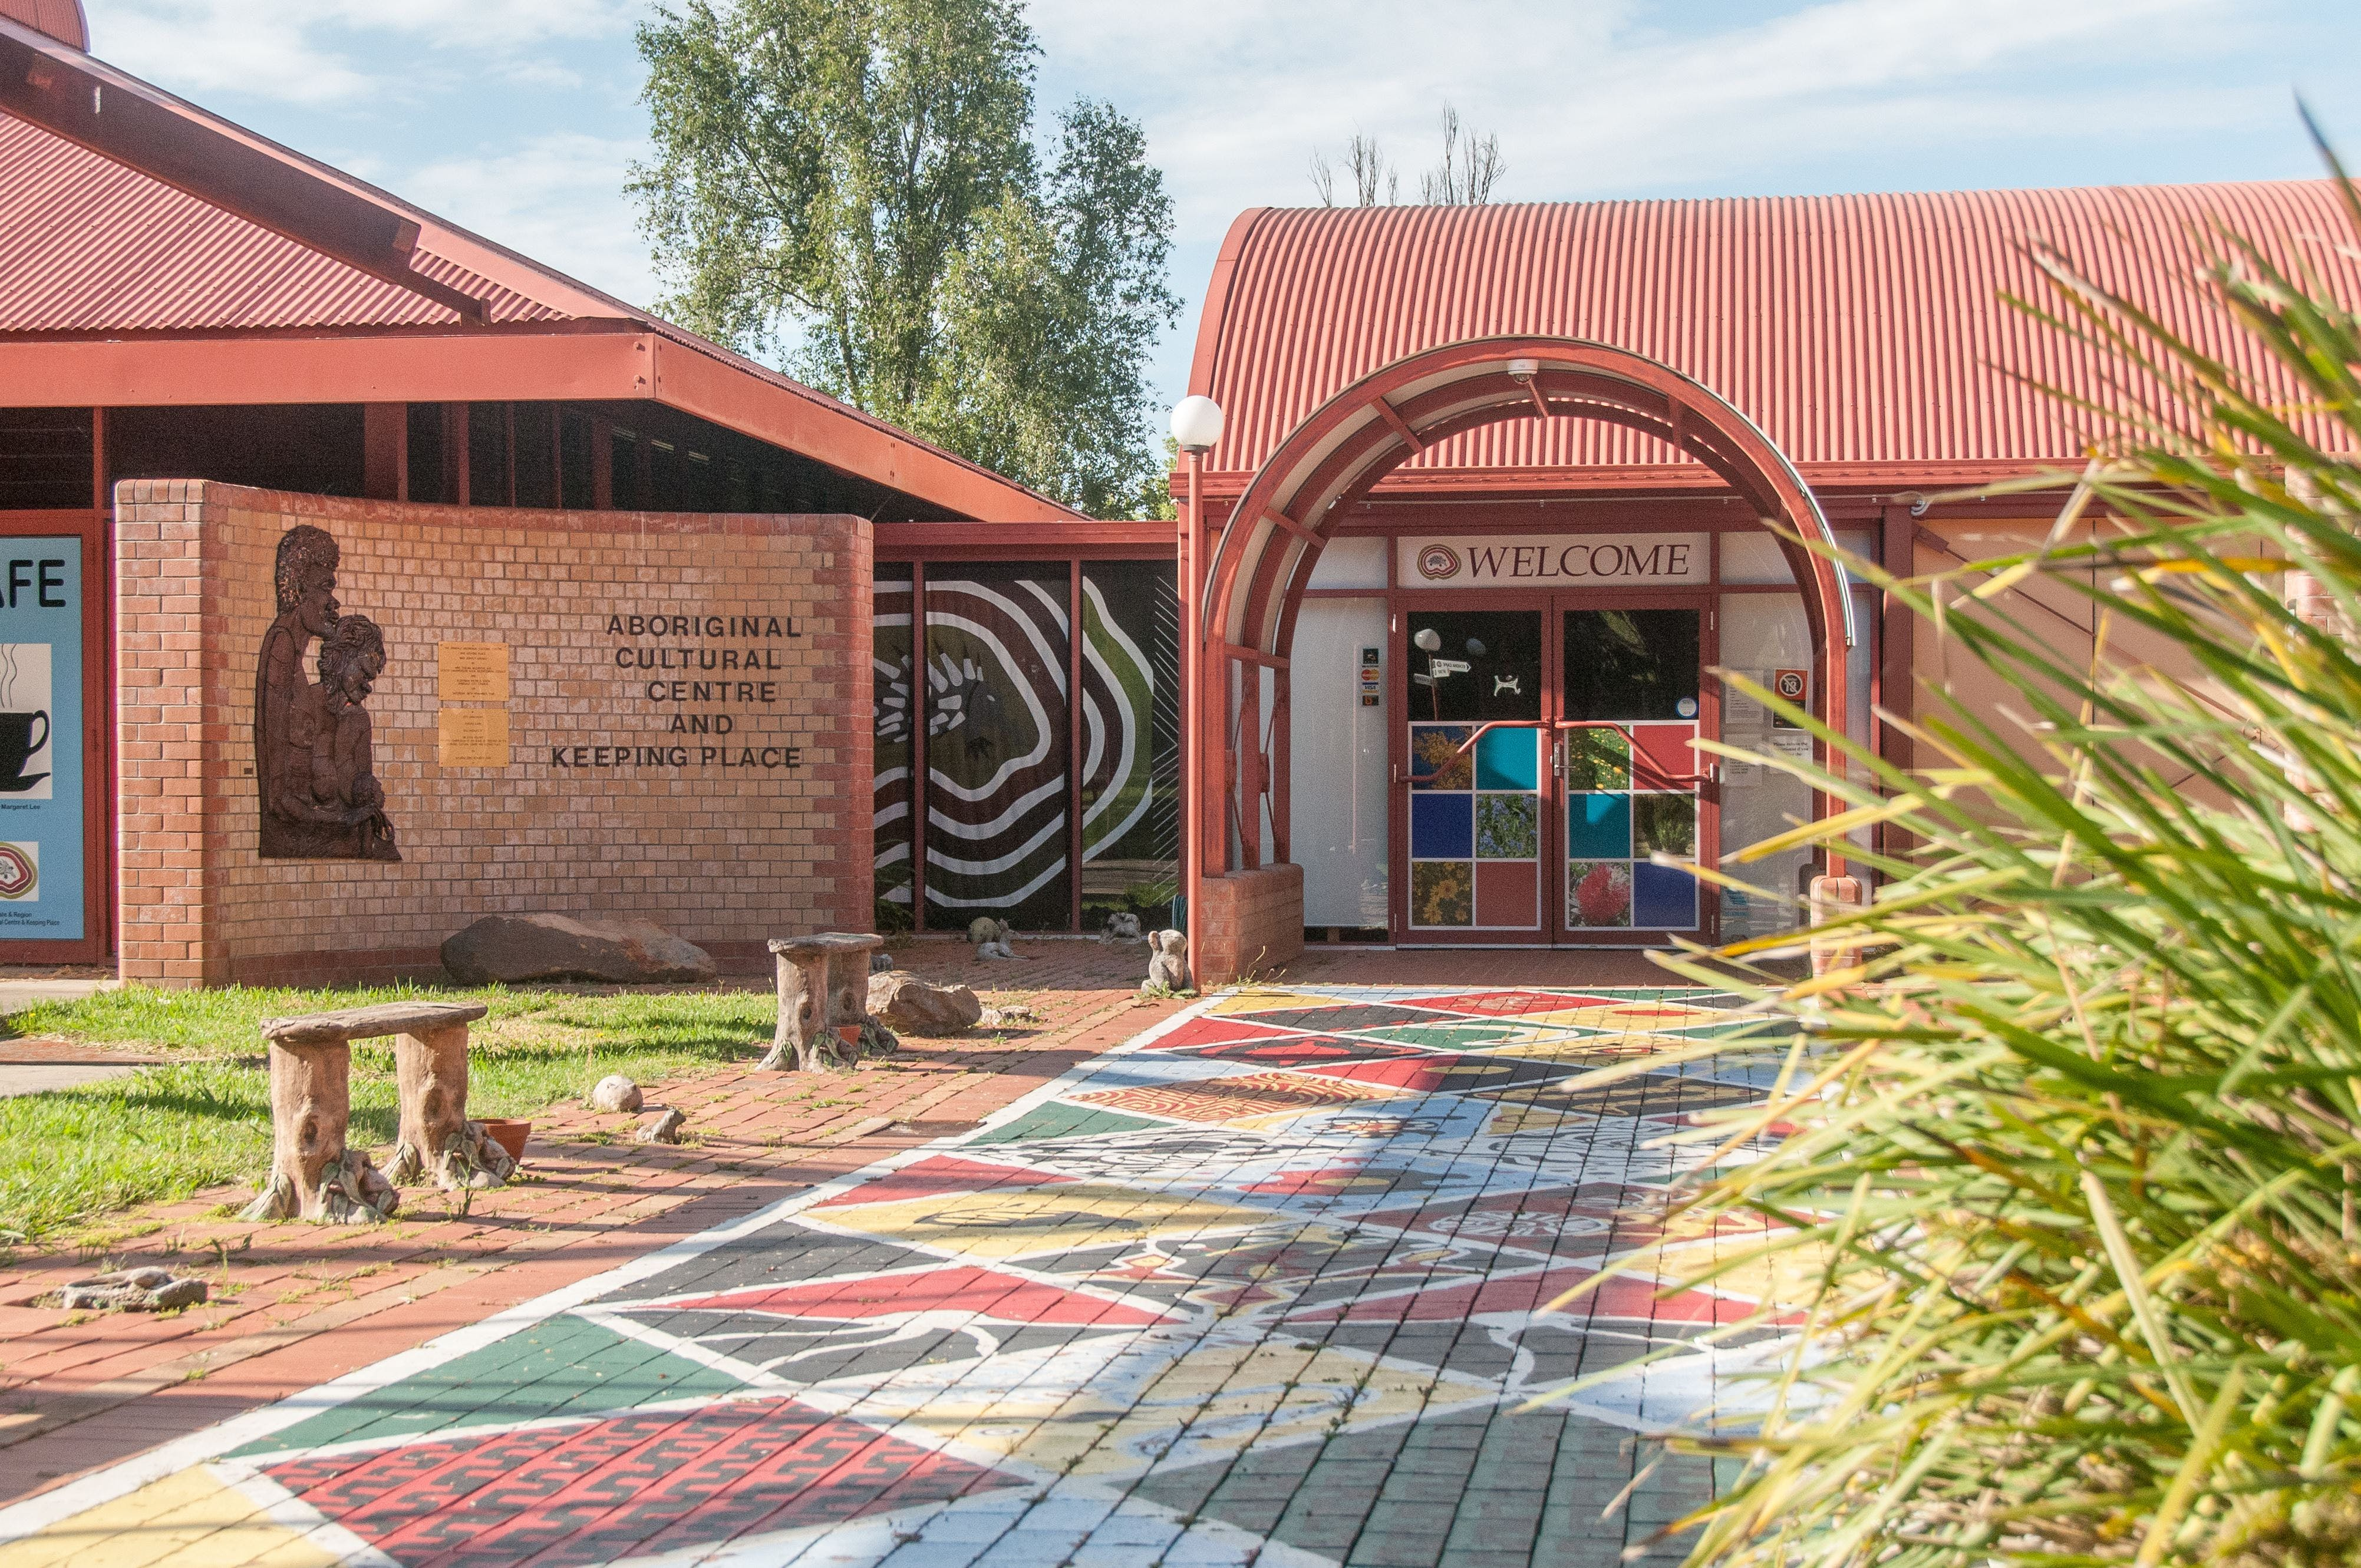 Armidale and Region Aboriginal Cultural Centre and Keeping Place - Accommodation Ballina